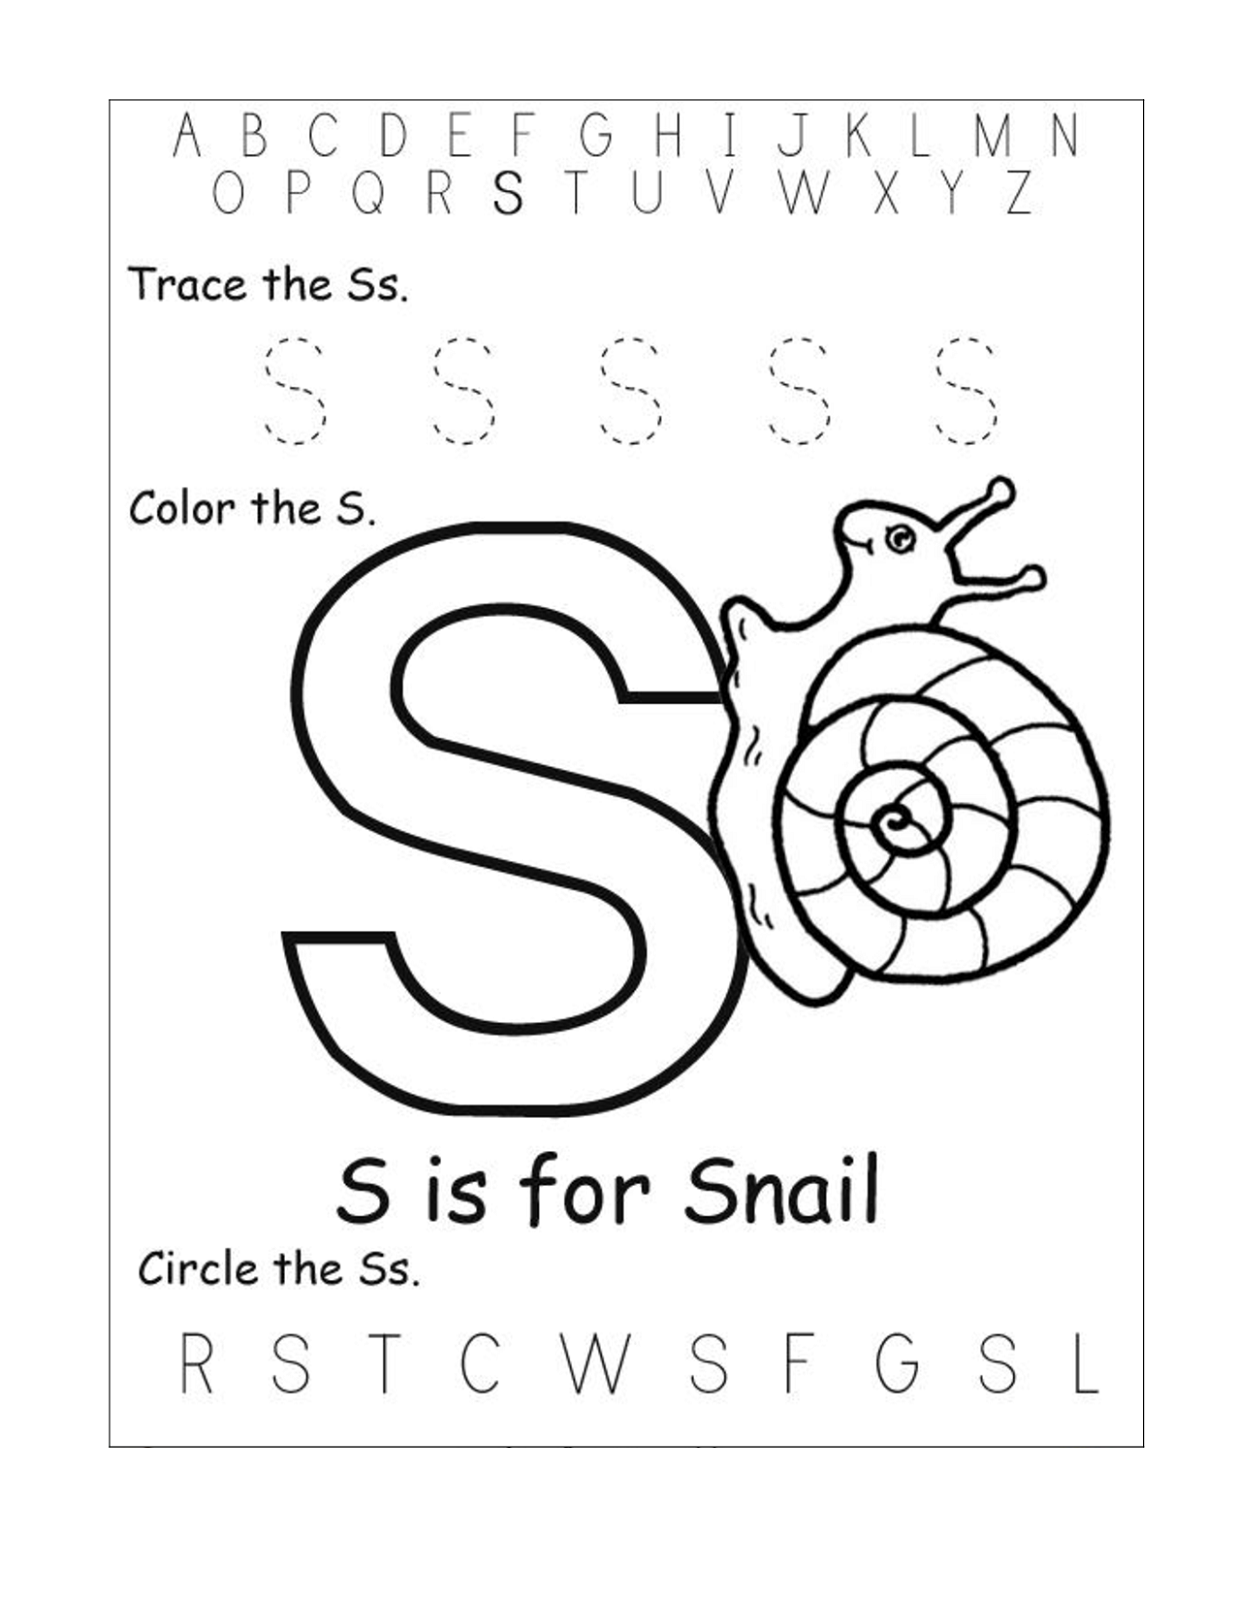 Worksheets Worksheets For Prek pre k drawing worksheets at getdrawings com free for personal use 1236x1600 kids printables worksheet math worksheets